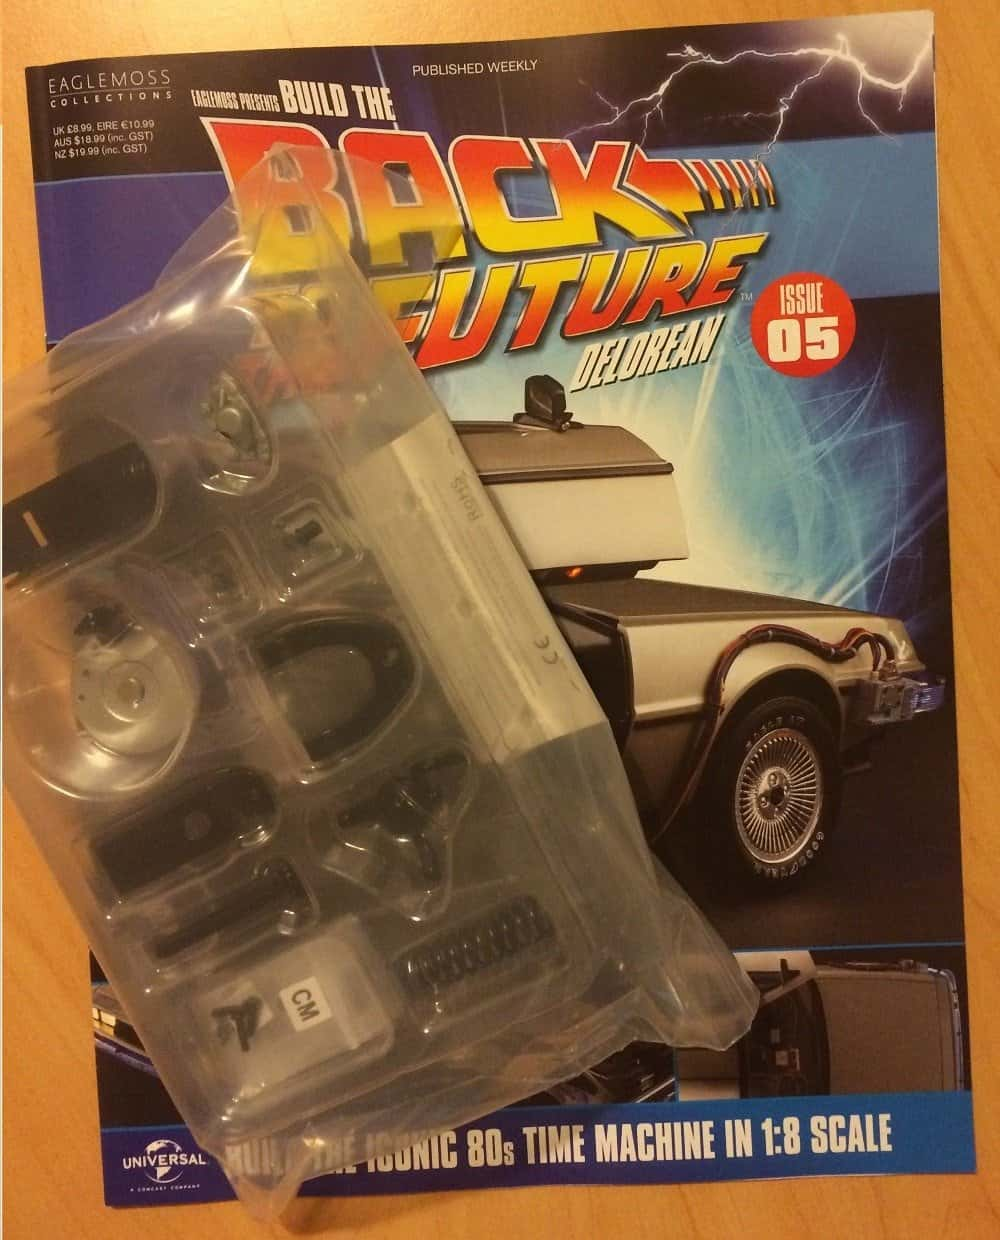 Building The Delorean Issue 5  Back To The Movies-3885